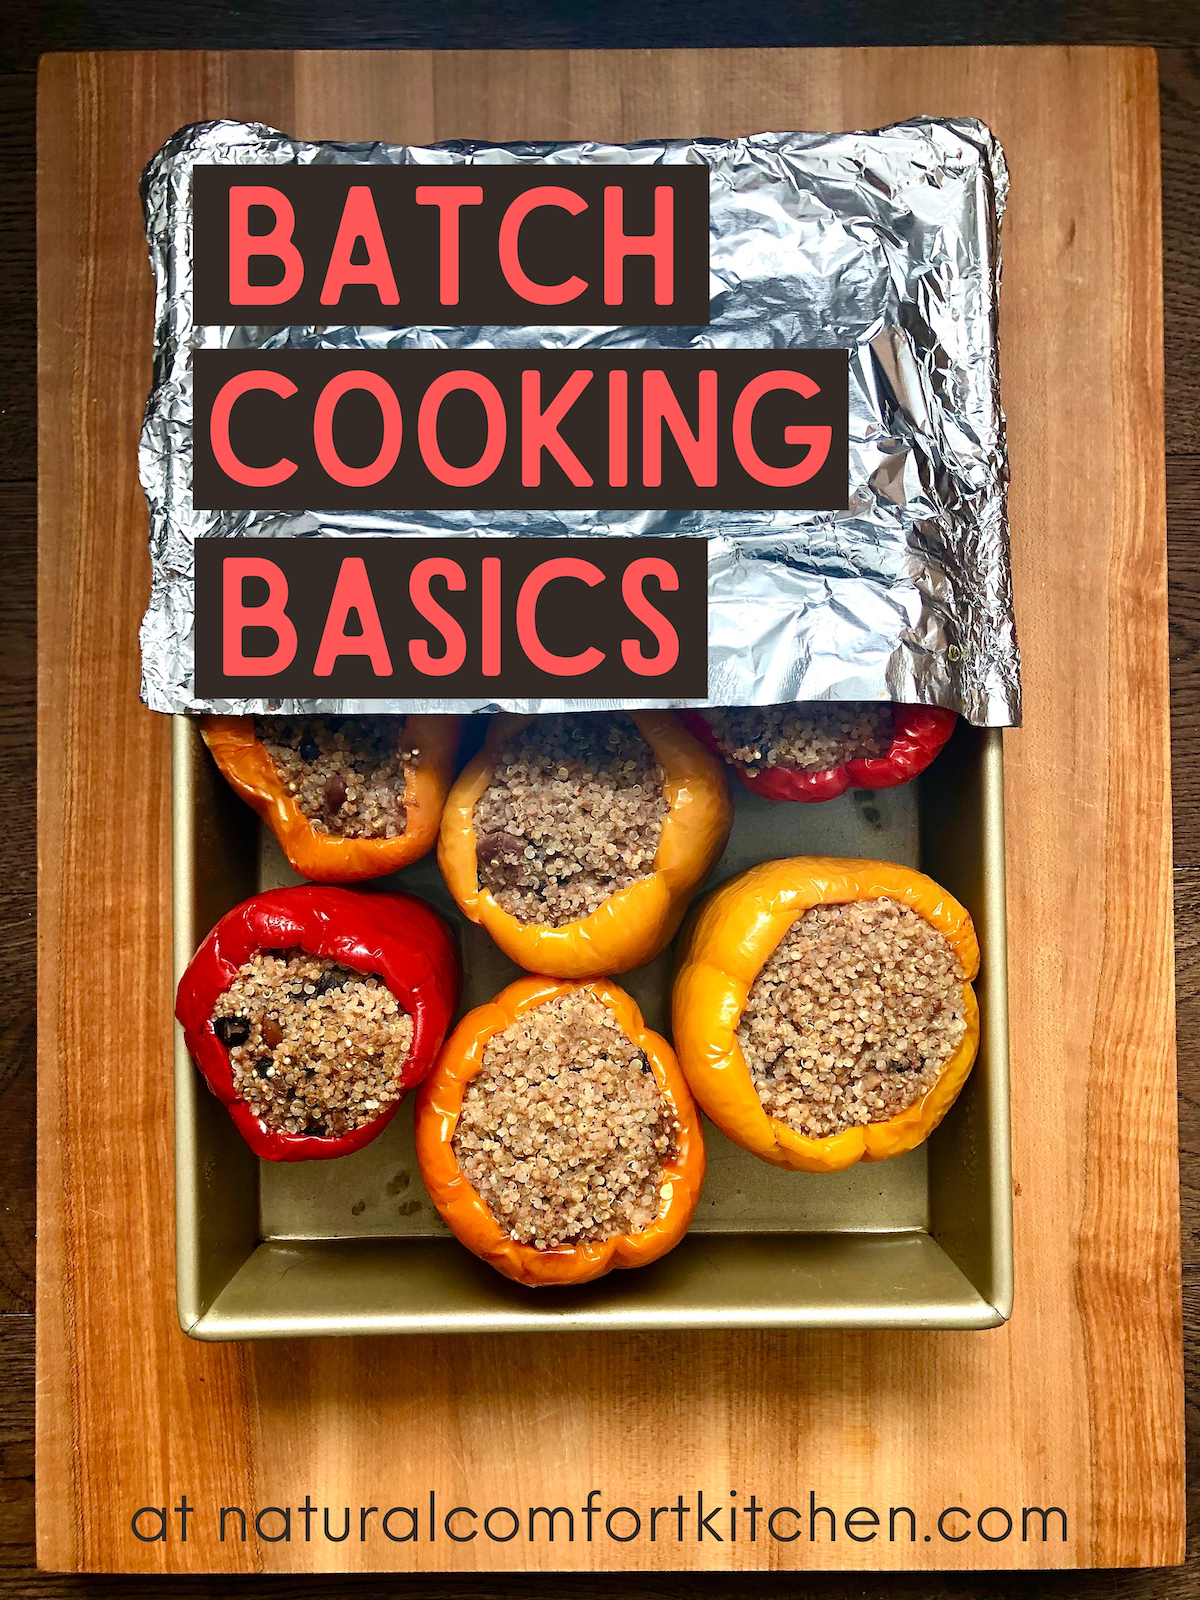 Get all the basics of (plant-based) batch cooking, plus a sample menu and weekly plan